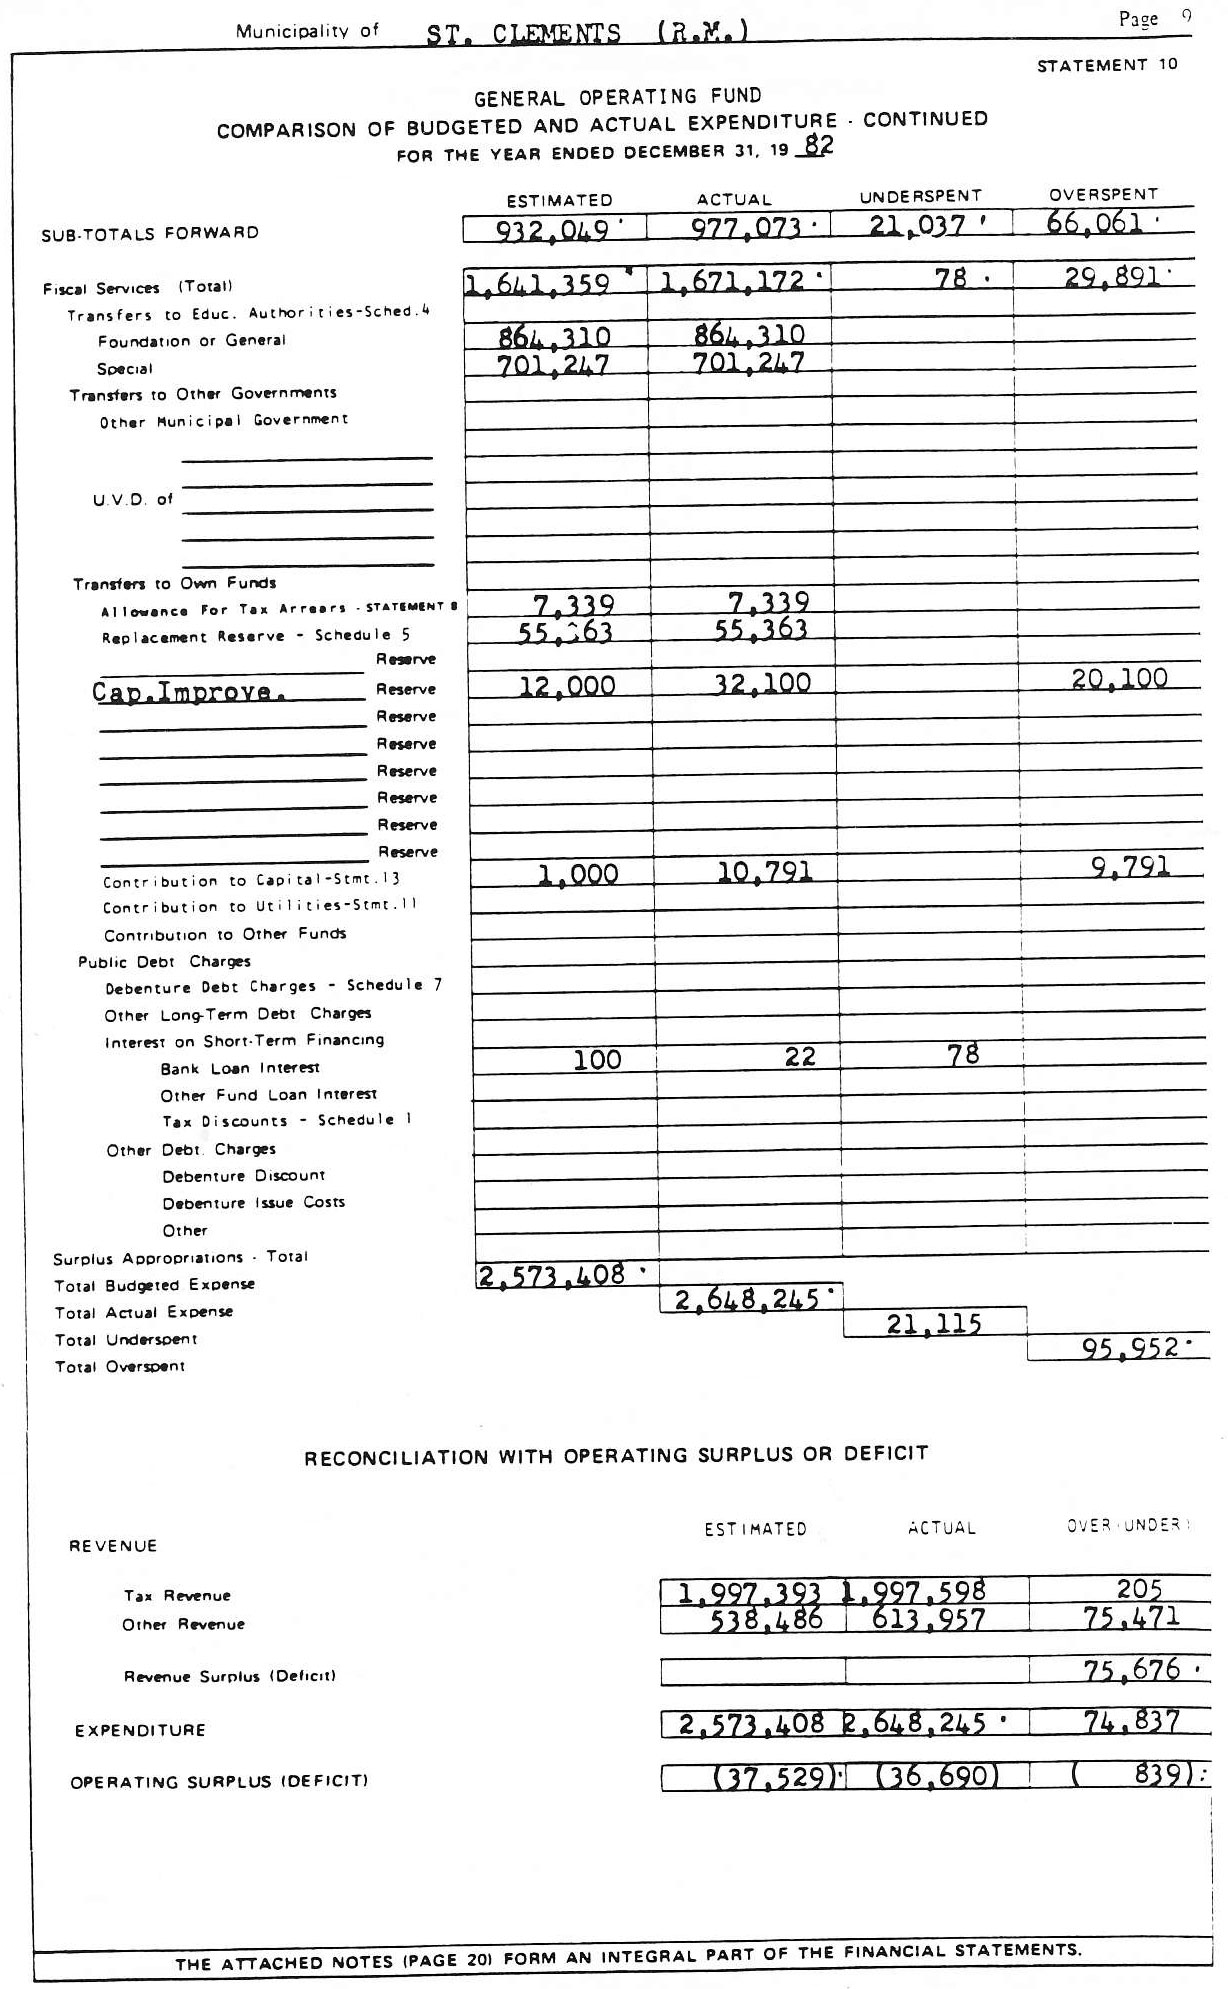 Financial Statement 1982 page 3